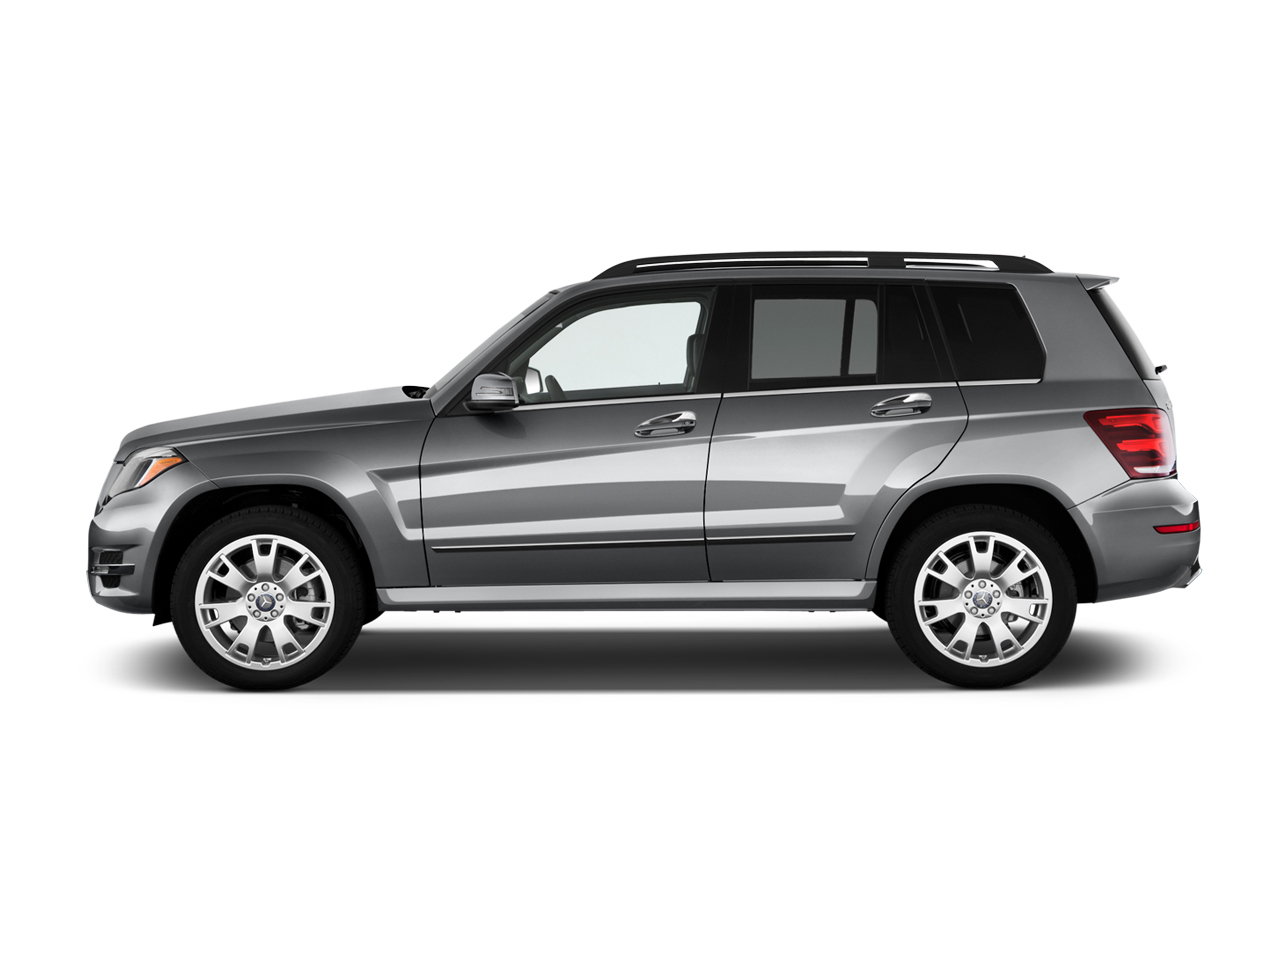 Mercedes glk 350 reviews 2015 release date price and specs for Mercedes benz reliability ratings